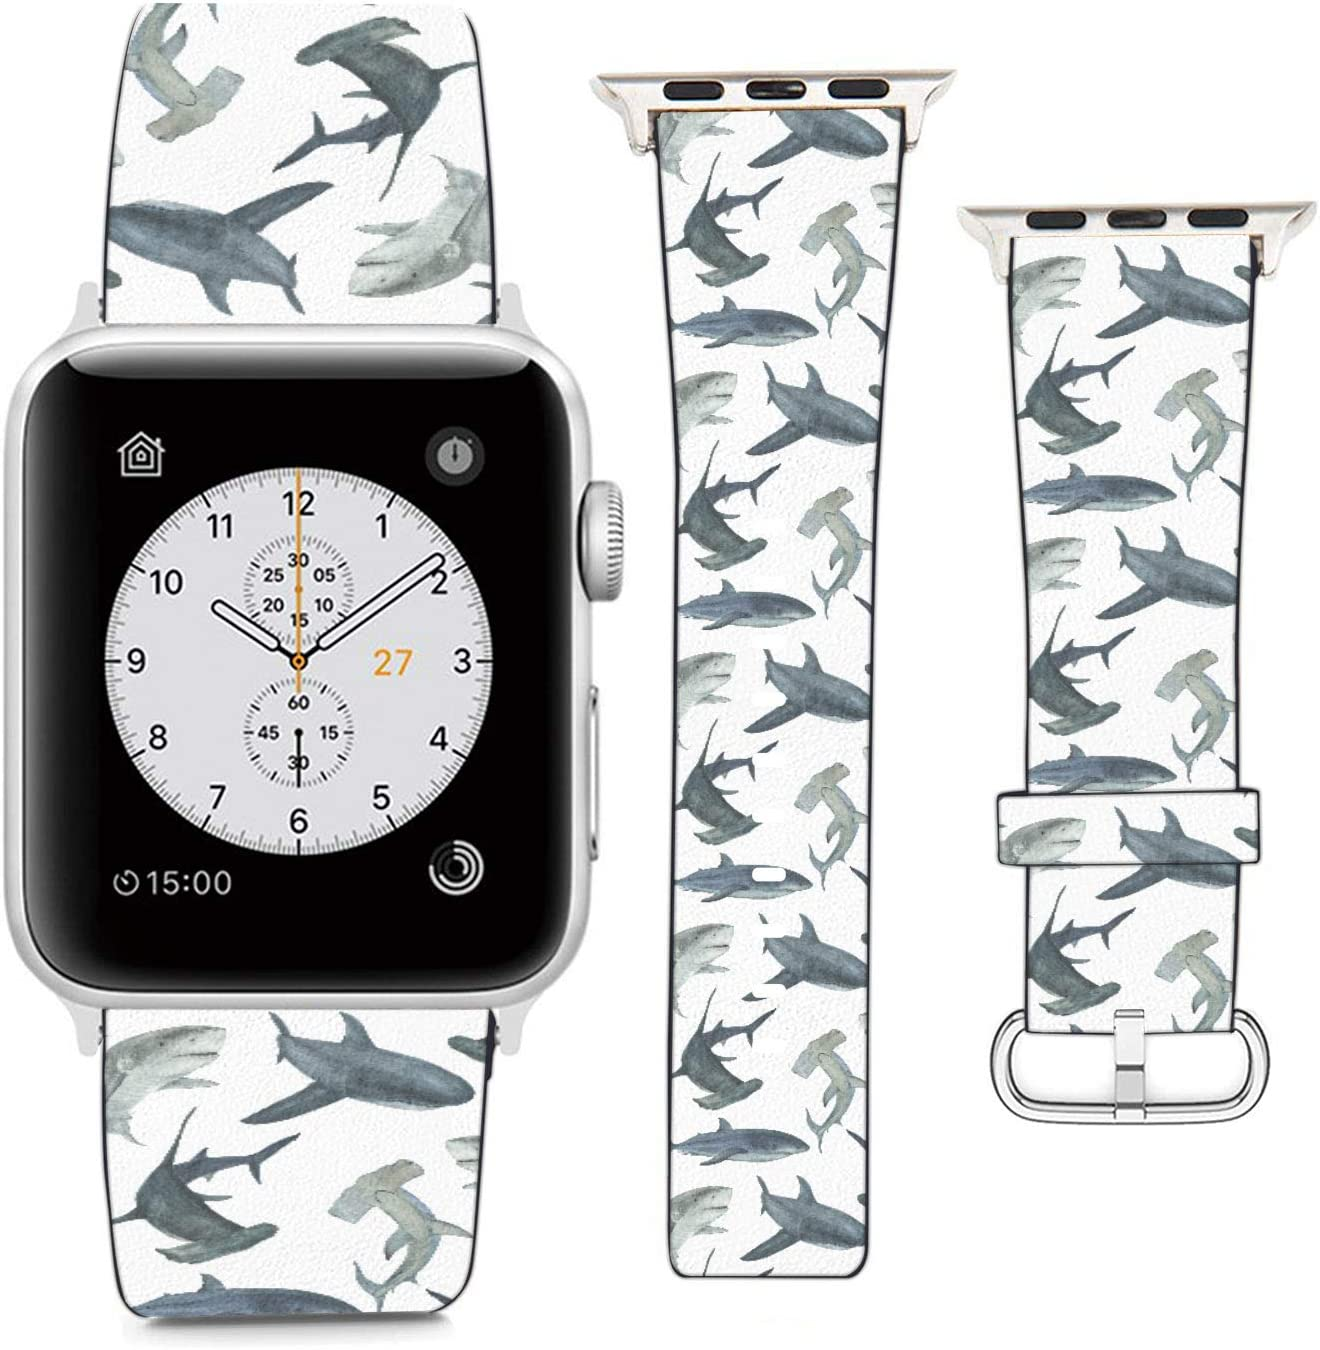 (Watercolor Shark Pattern) Patterned Leather Wristband Strap Compatible with Apple Watch Series 5/4/3/2/1 gen,Replacement for iWatch 38mm / 40mm Bands